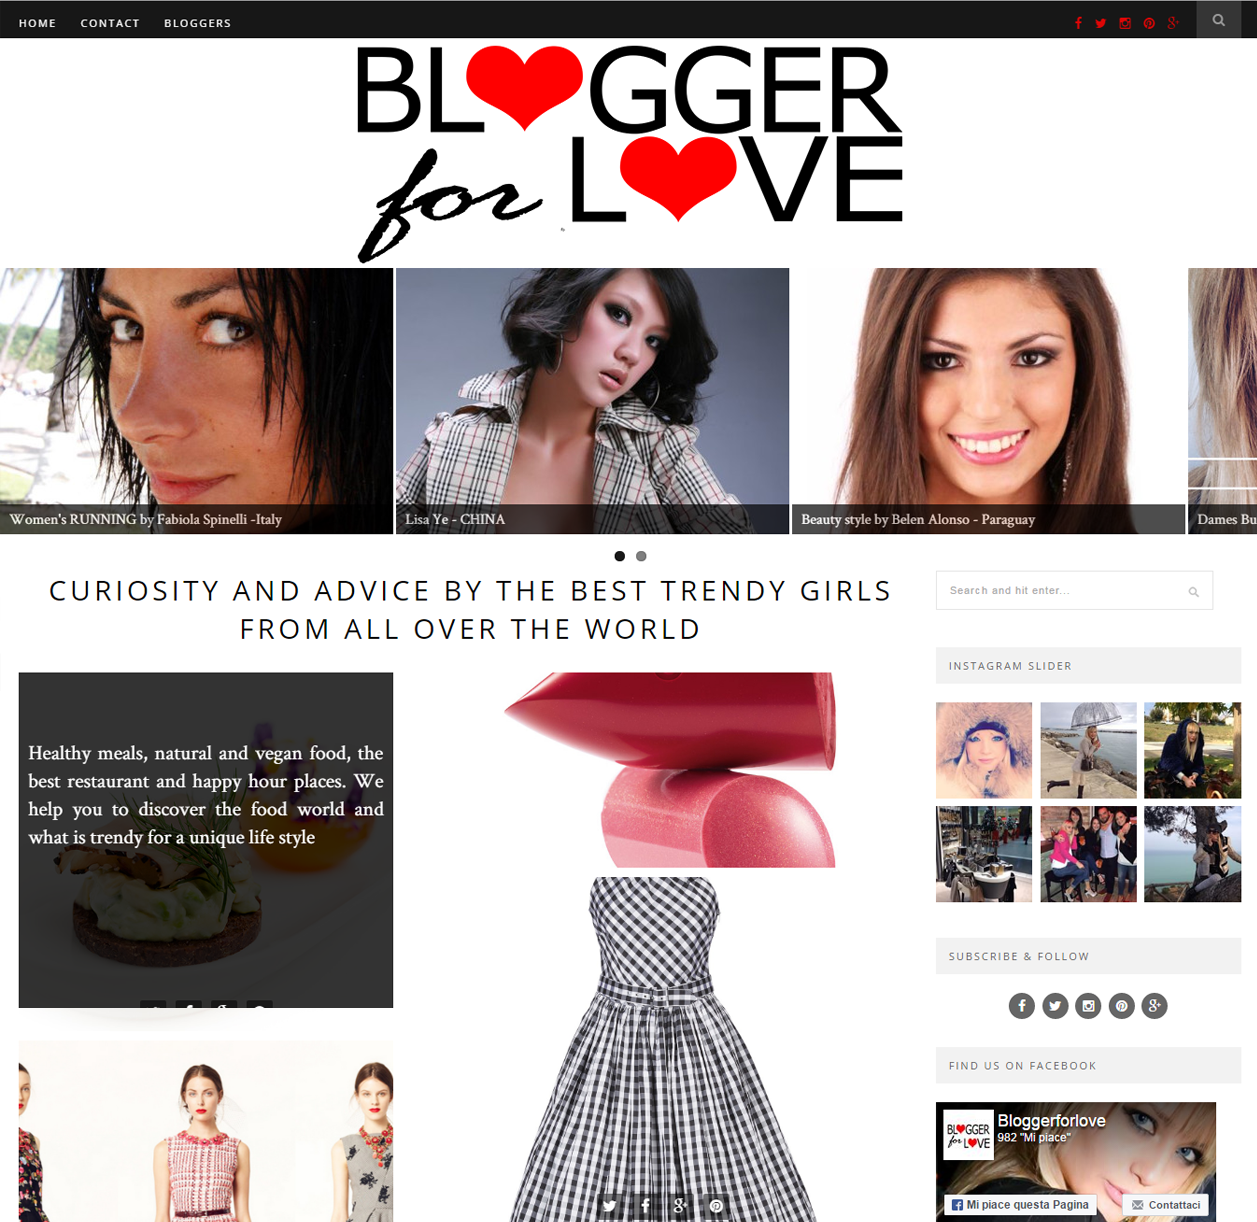 bloggerforlove.com